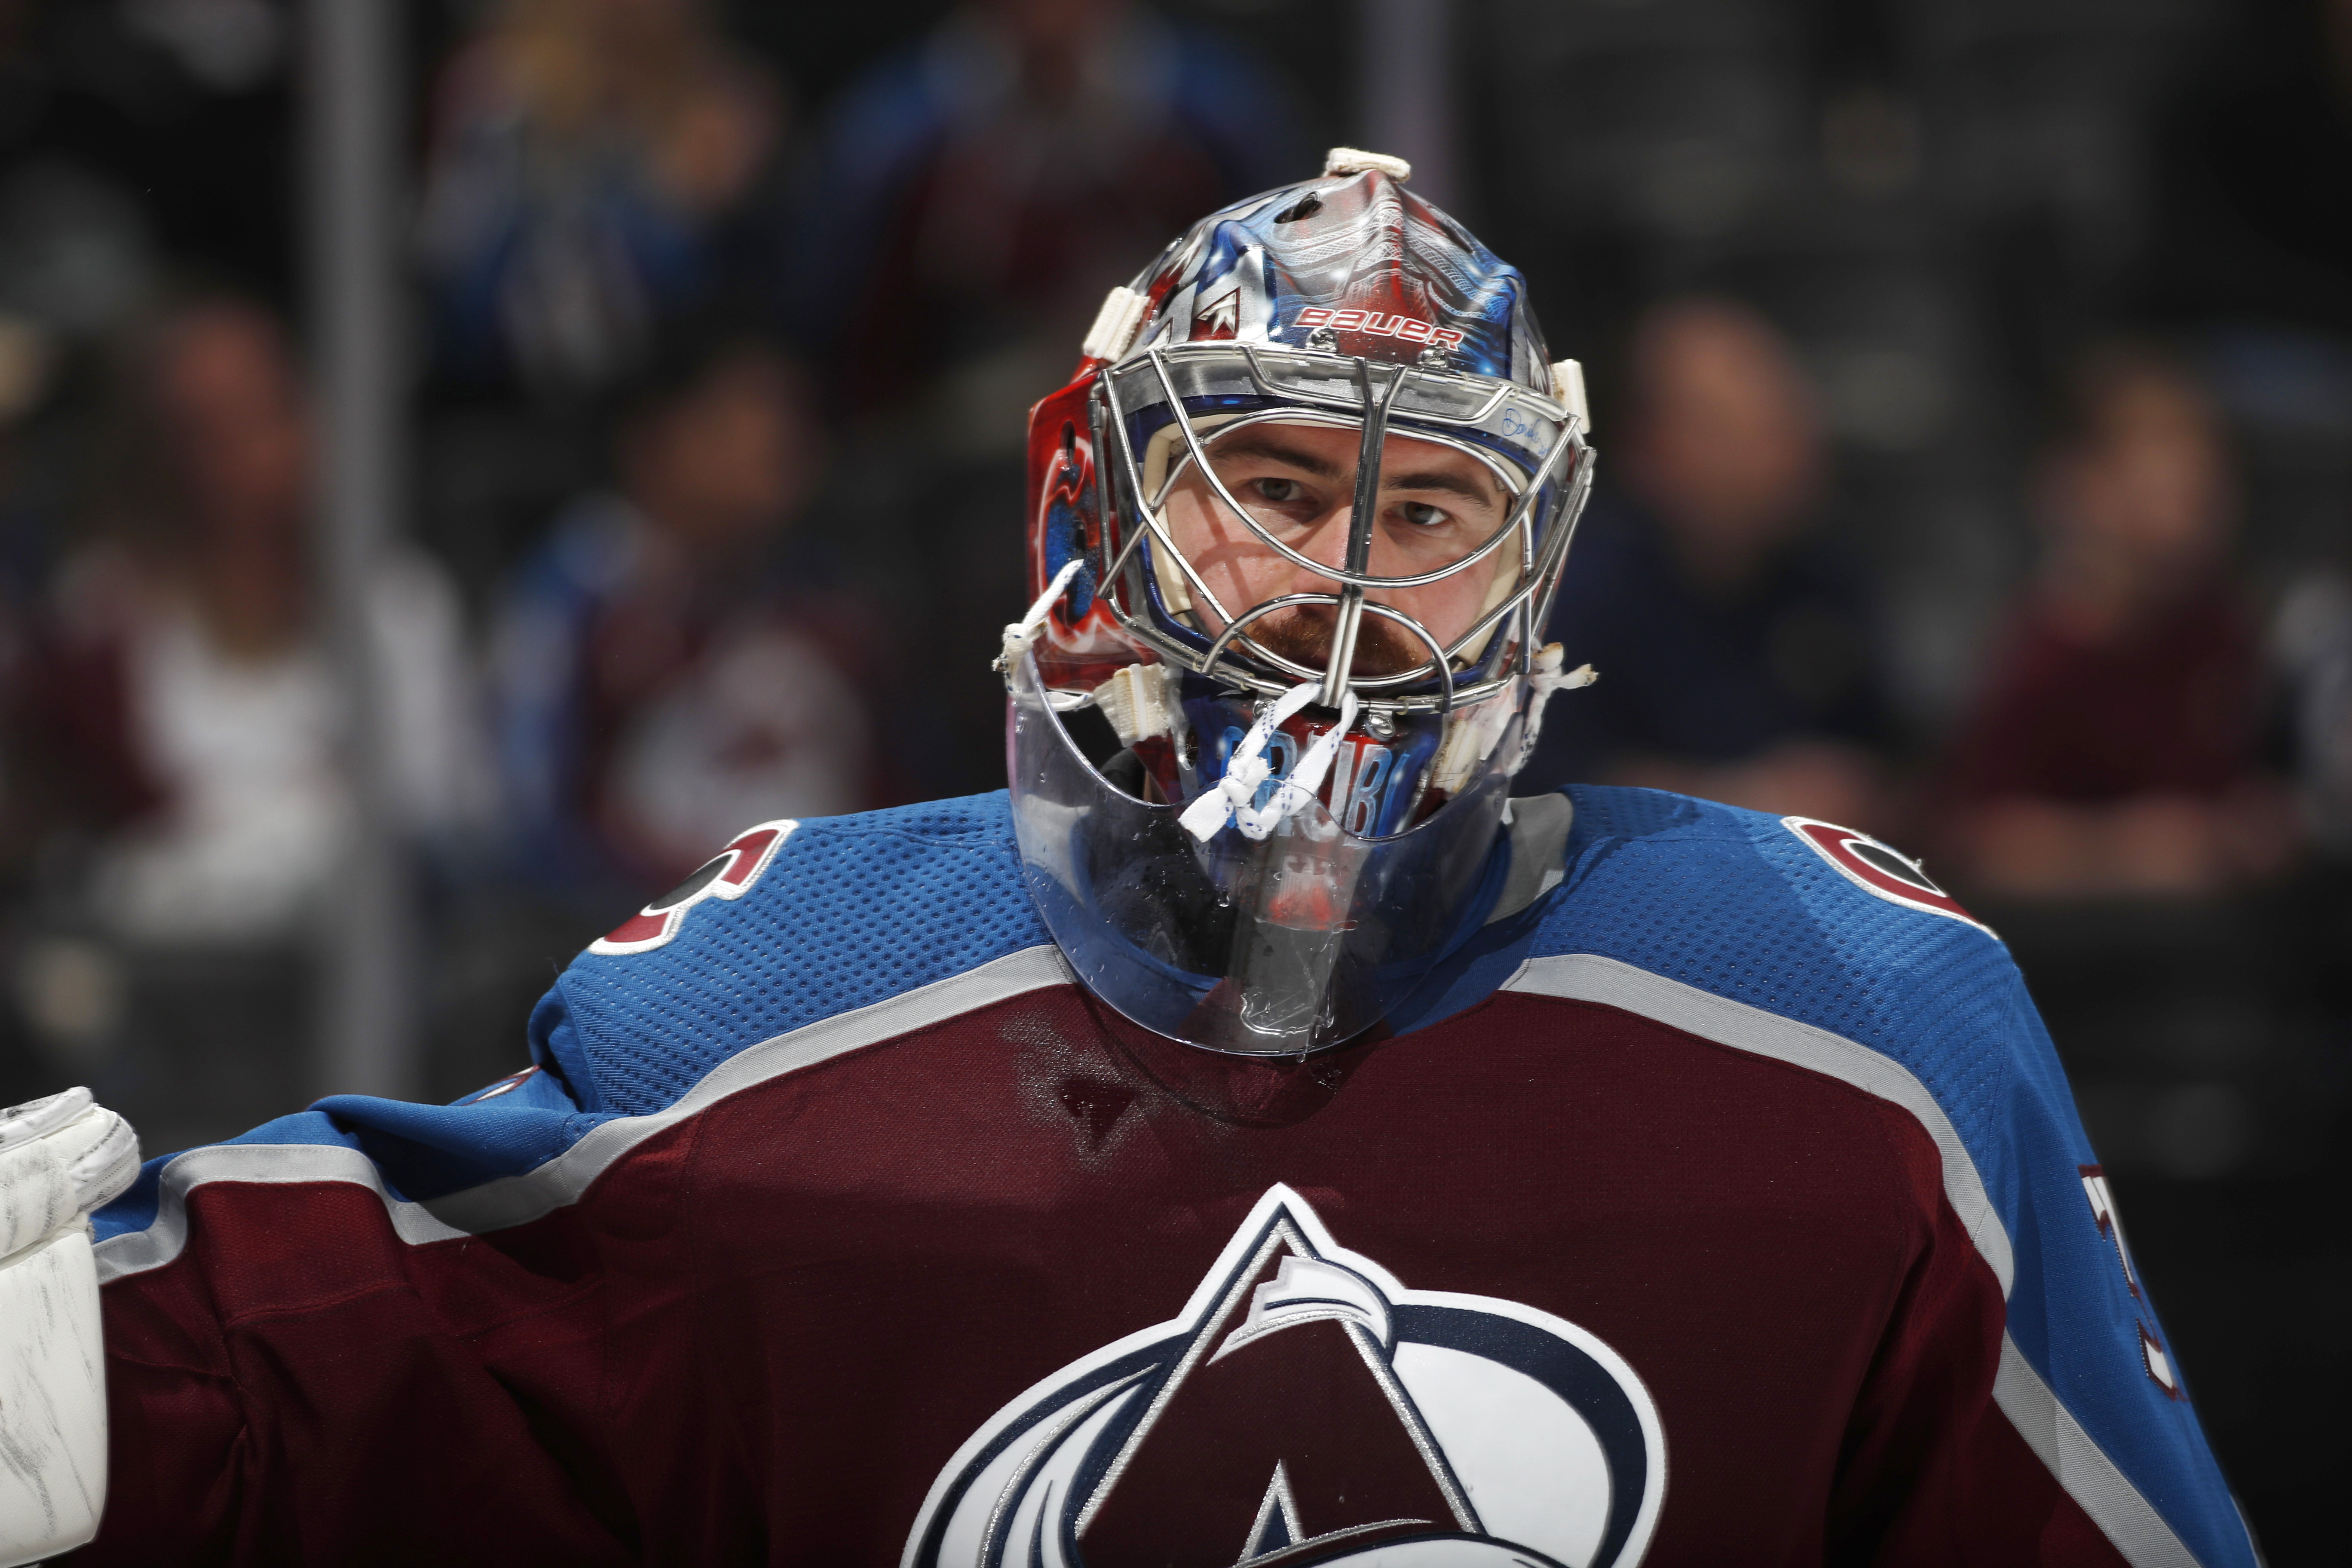 Grubauer shines down the stretch to propel Avs into playoffs